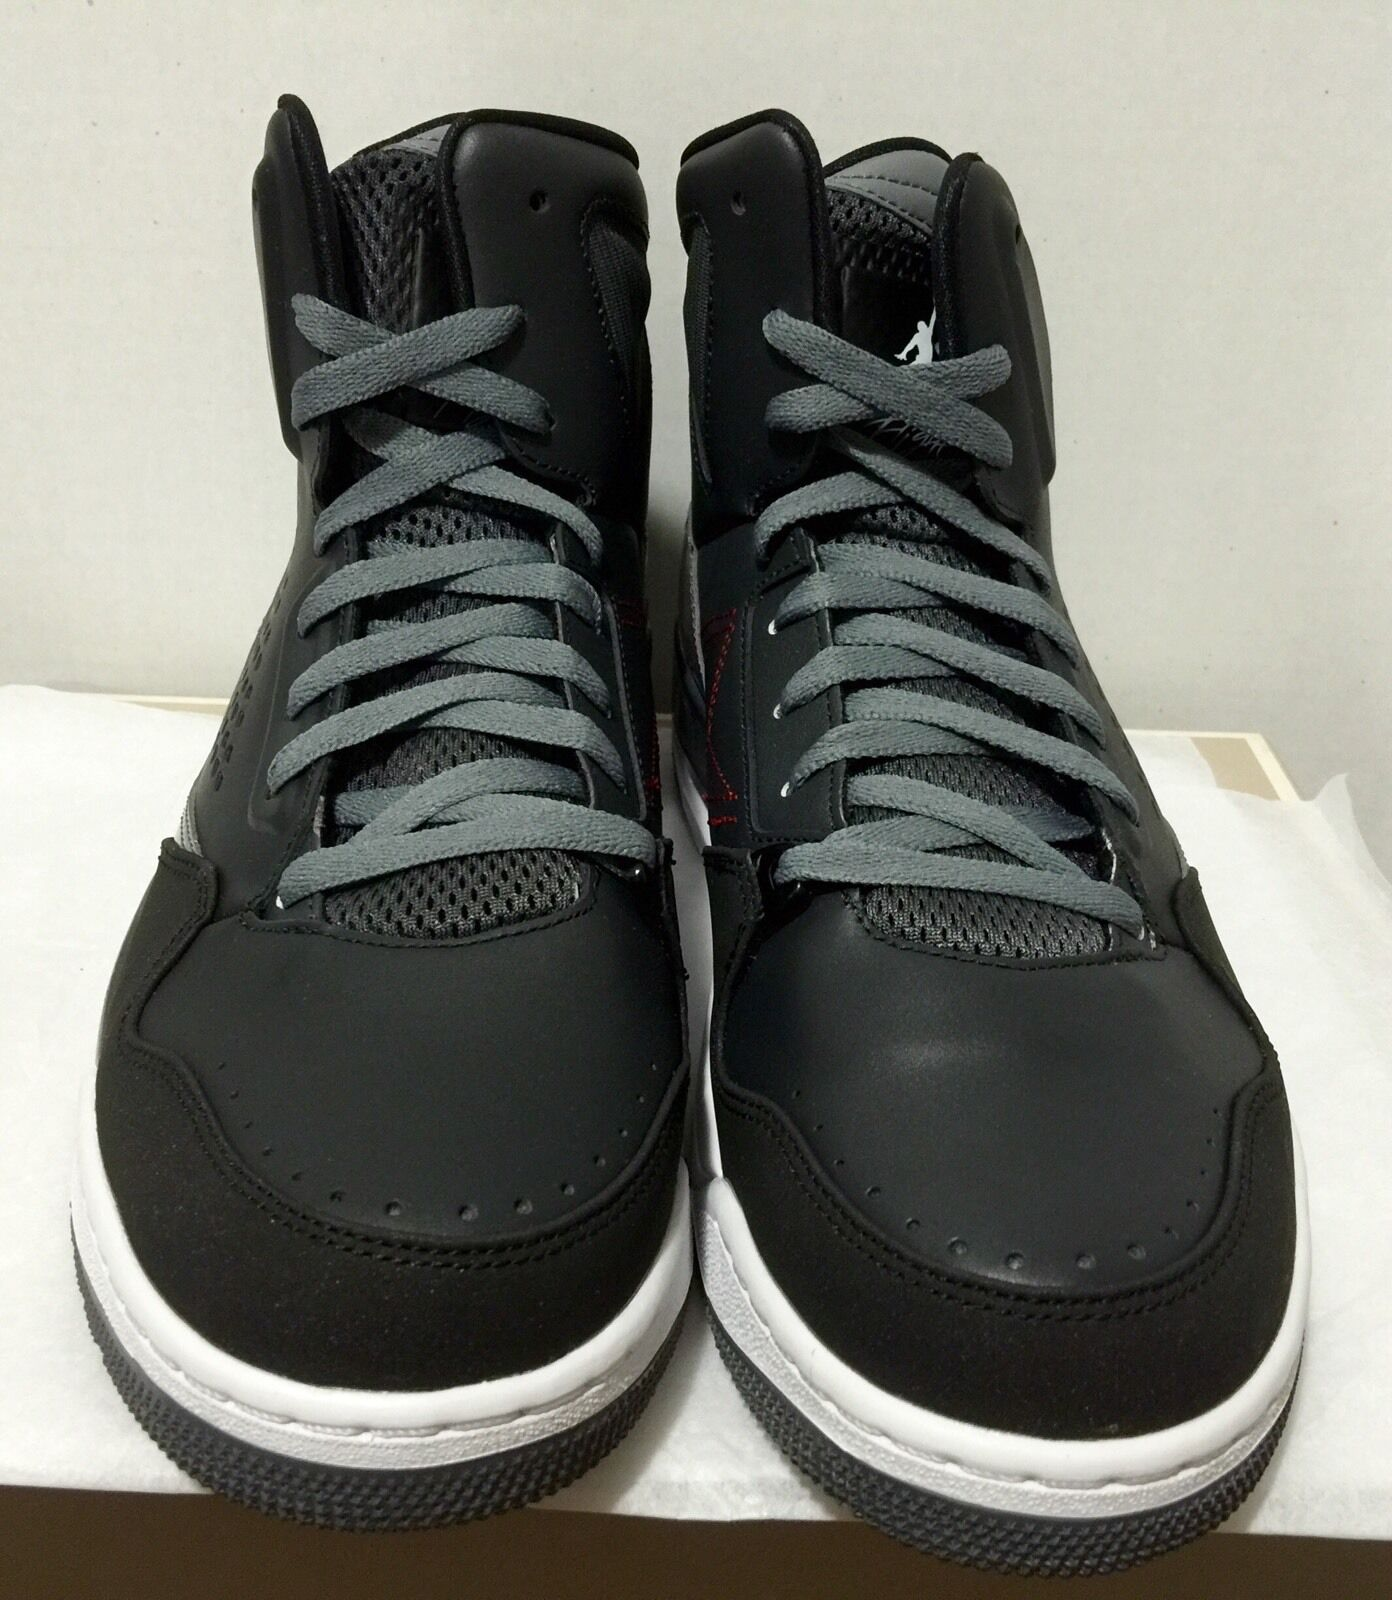 Jordan Jumpman SC-3 Anthracite/White, Black, Grey, 629877 015, Comfortable best-selling model of the brand